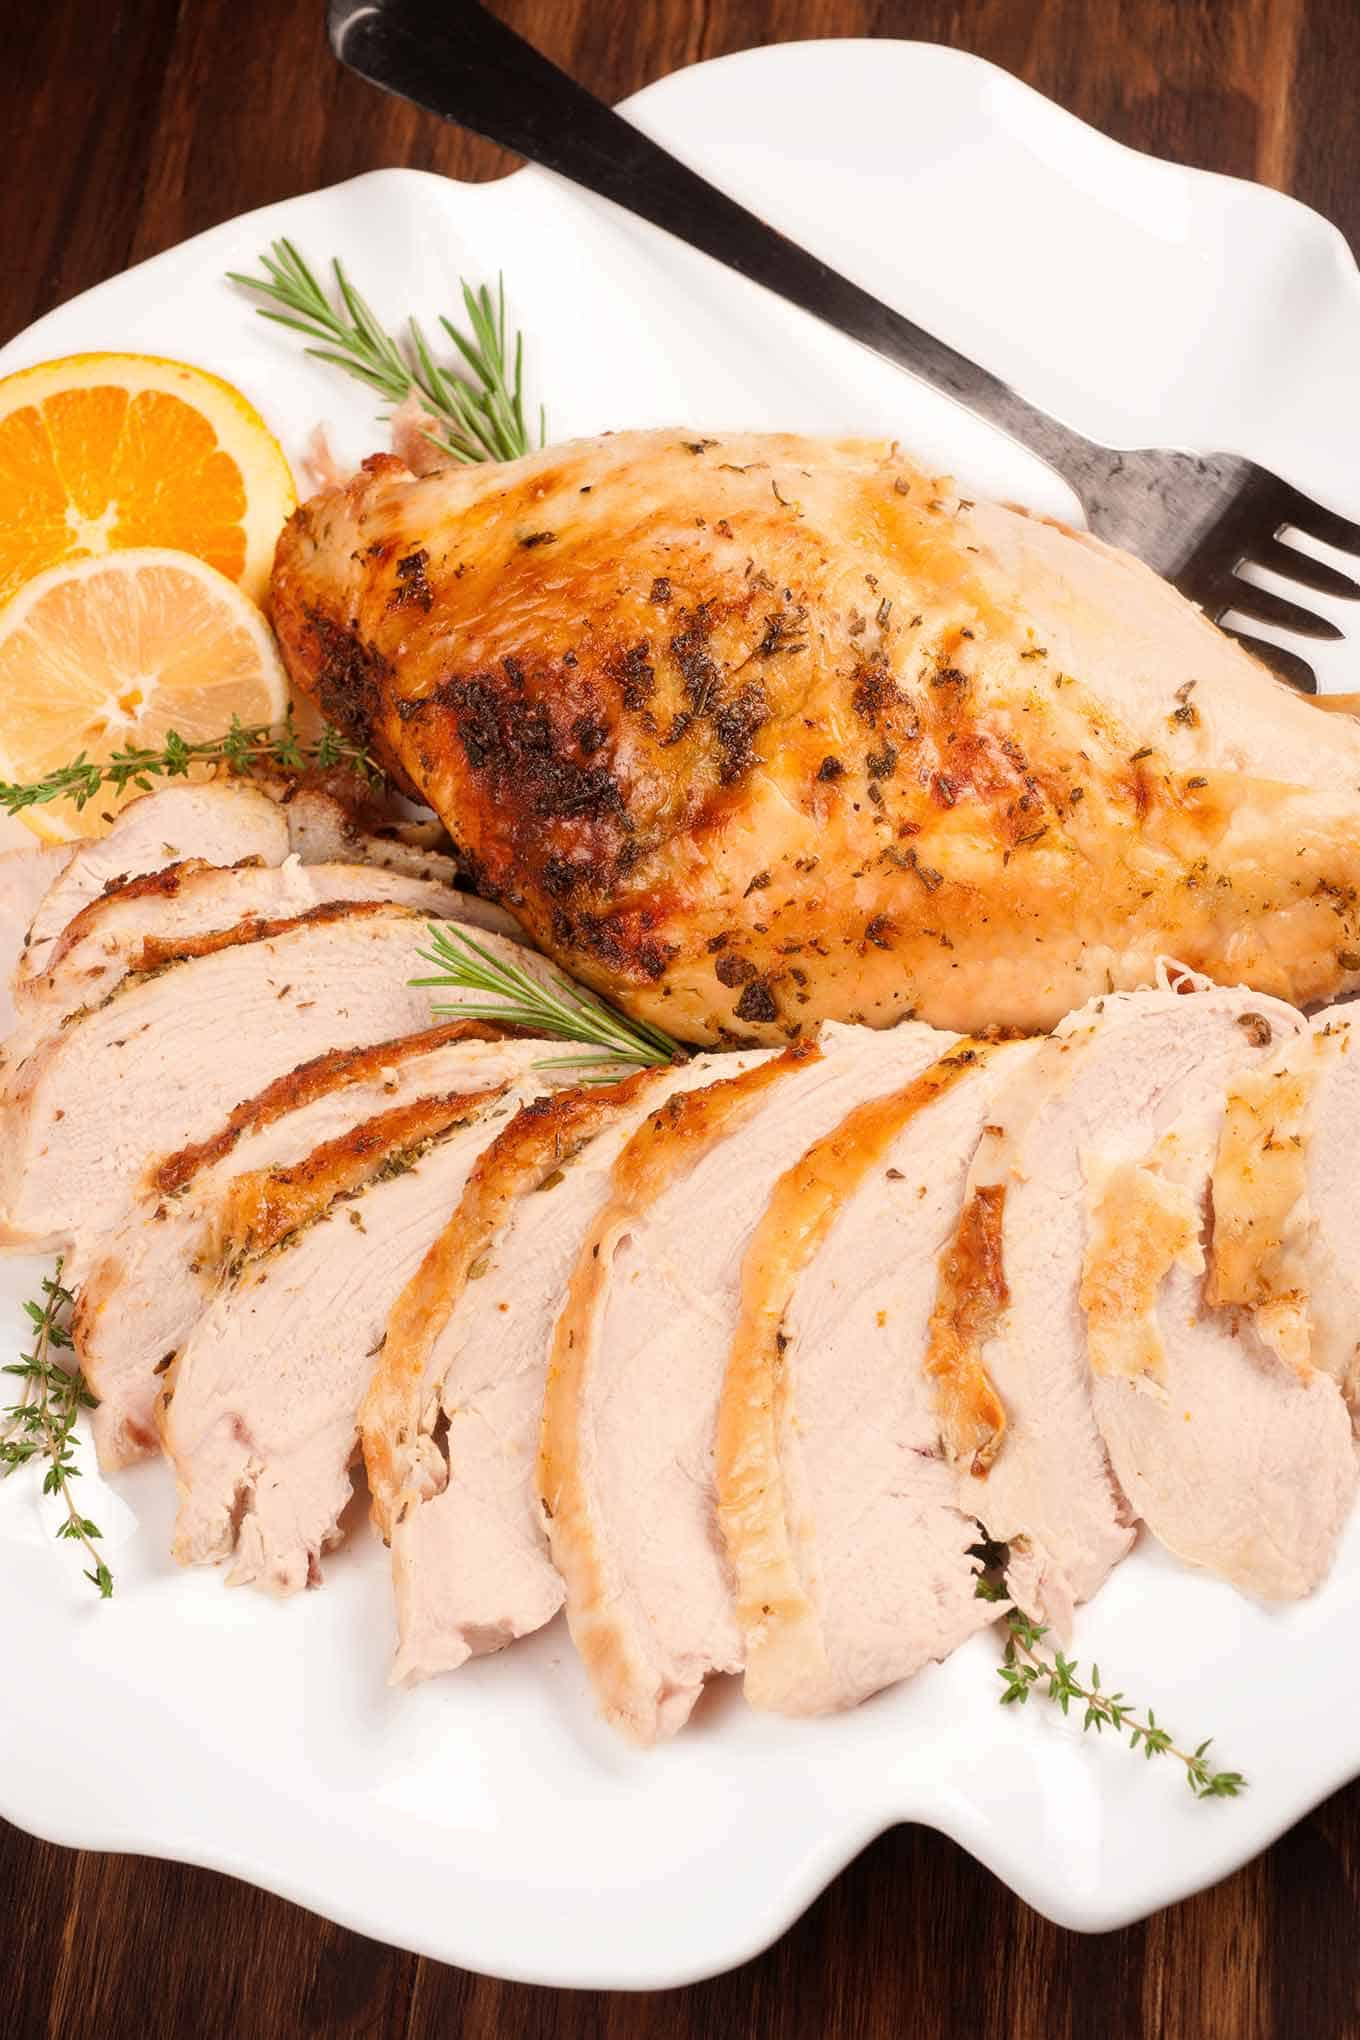 Slices of roasted turkey breast and unsliced turkey on a serving platter.